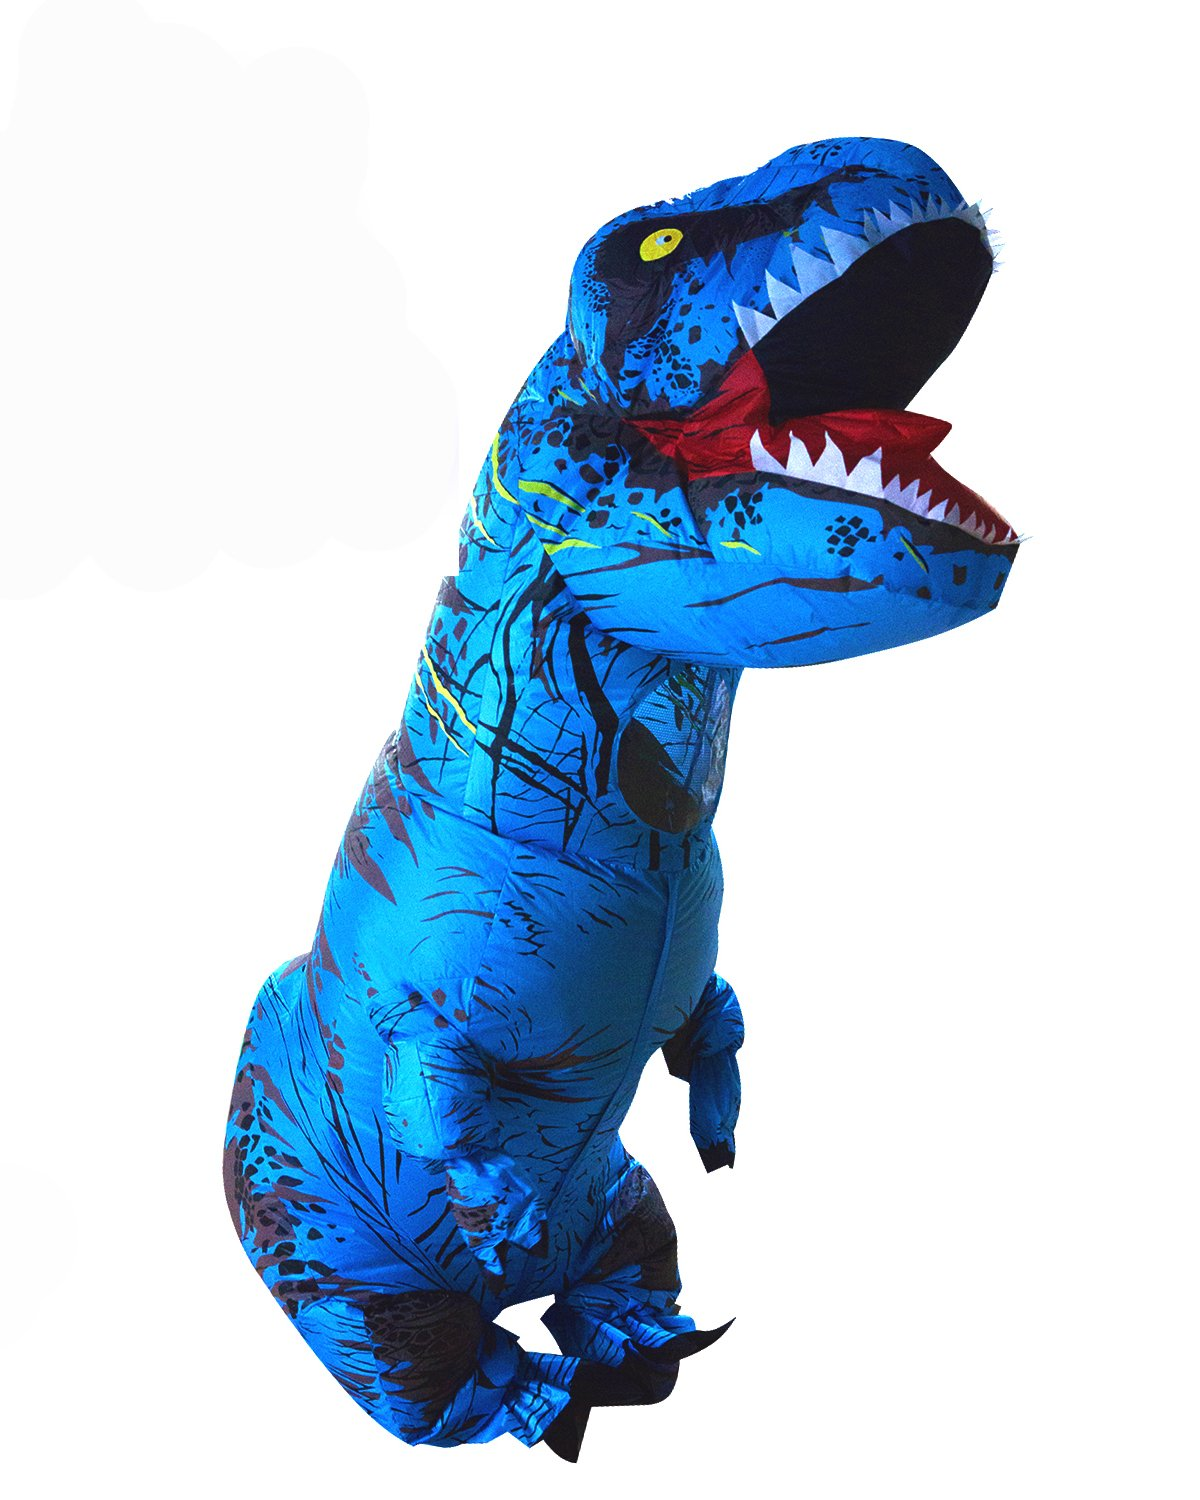 Adult Inflatable T-rex Costume Dinosaur Halloween Suit Cosplay Fantasy Costumes Blue